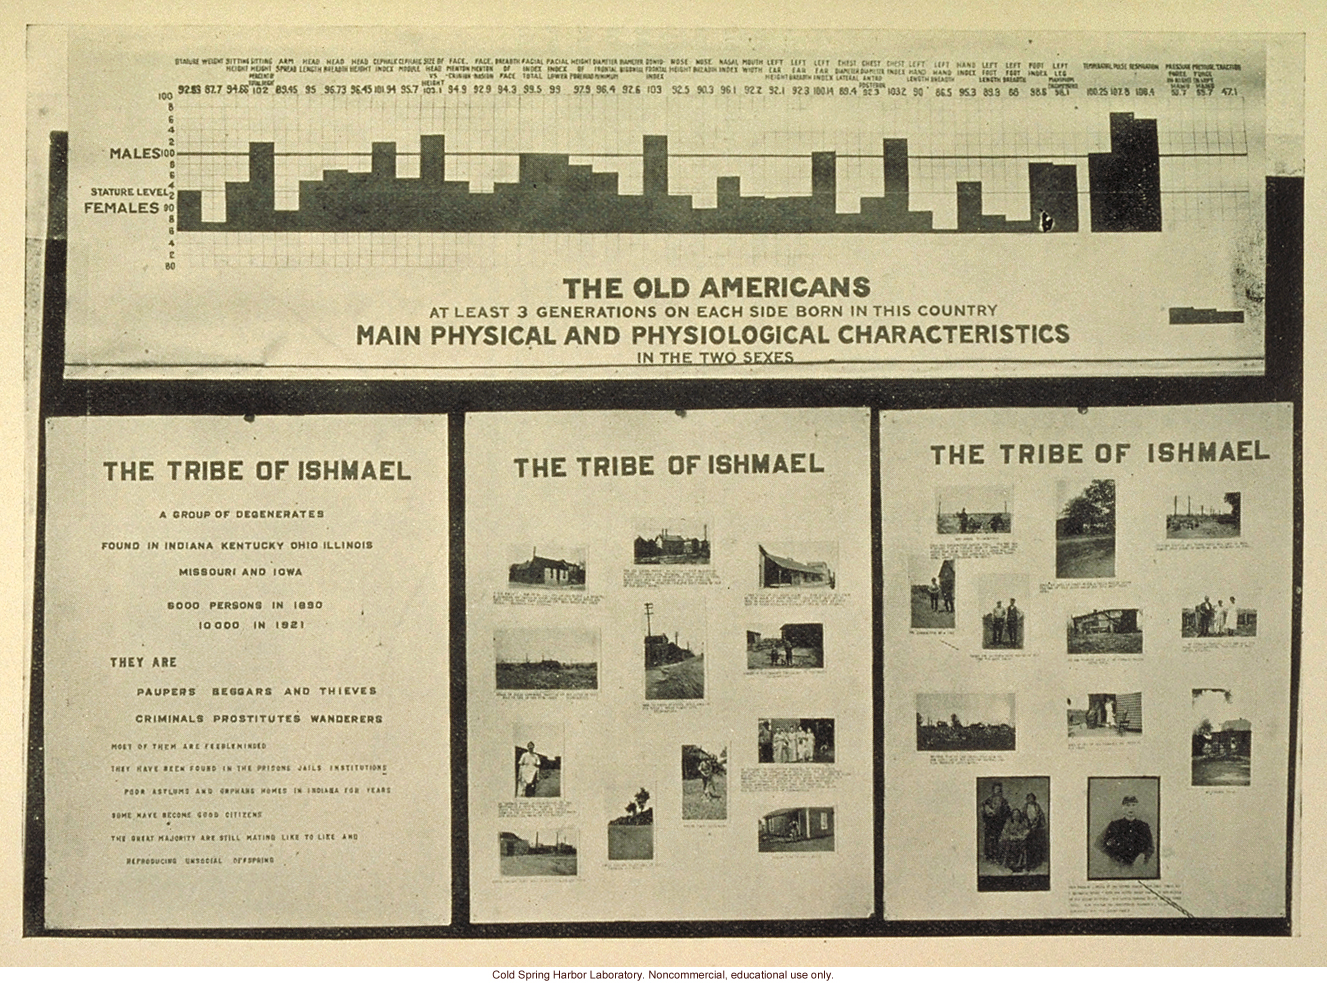 &quote;The Old Americans, main physical and physiological characteristics of the Tribe of Ishmael&quote;